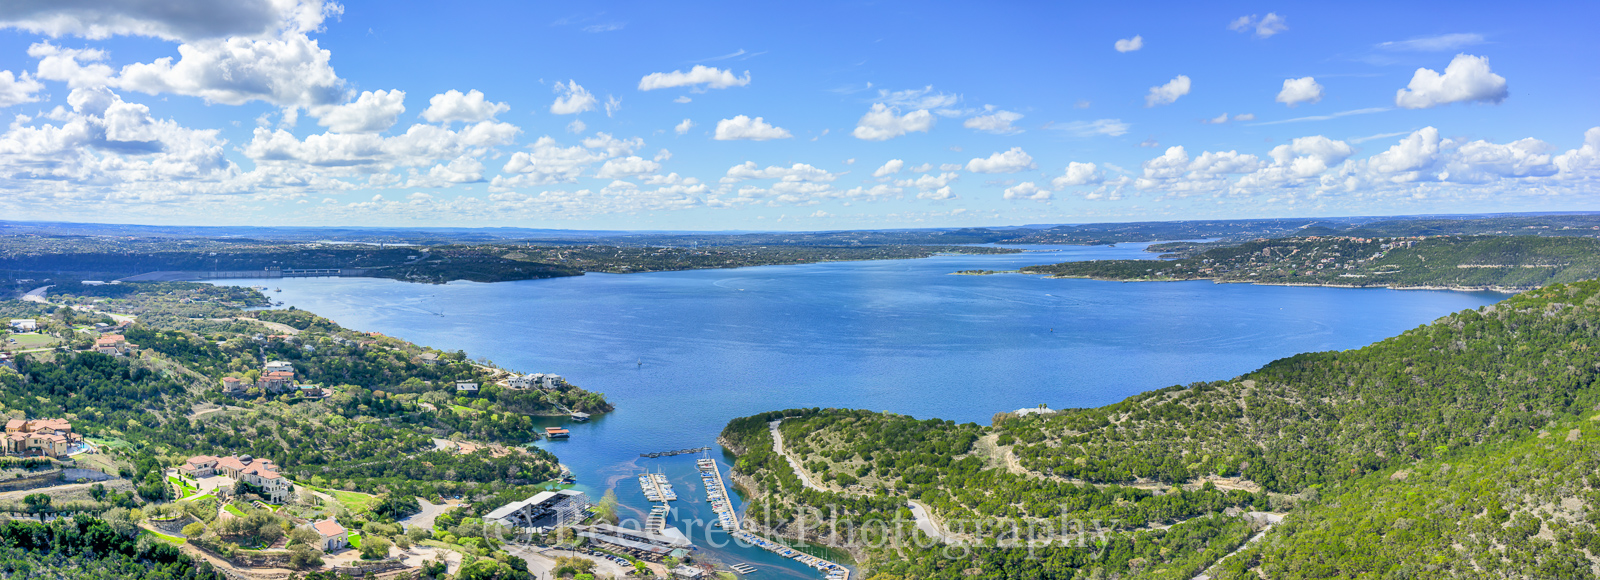 Austin, Hill Country, Lake Travis, aerial, blue sky, boating, boats, clouds, drone, lake, landscape, marina, pano, panorama, recreational, sailing, water, photo